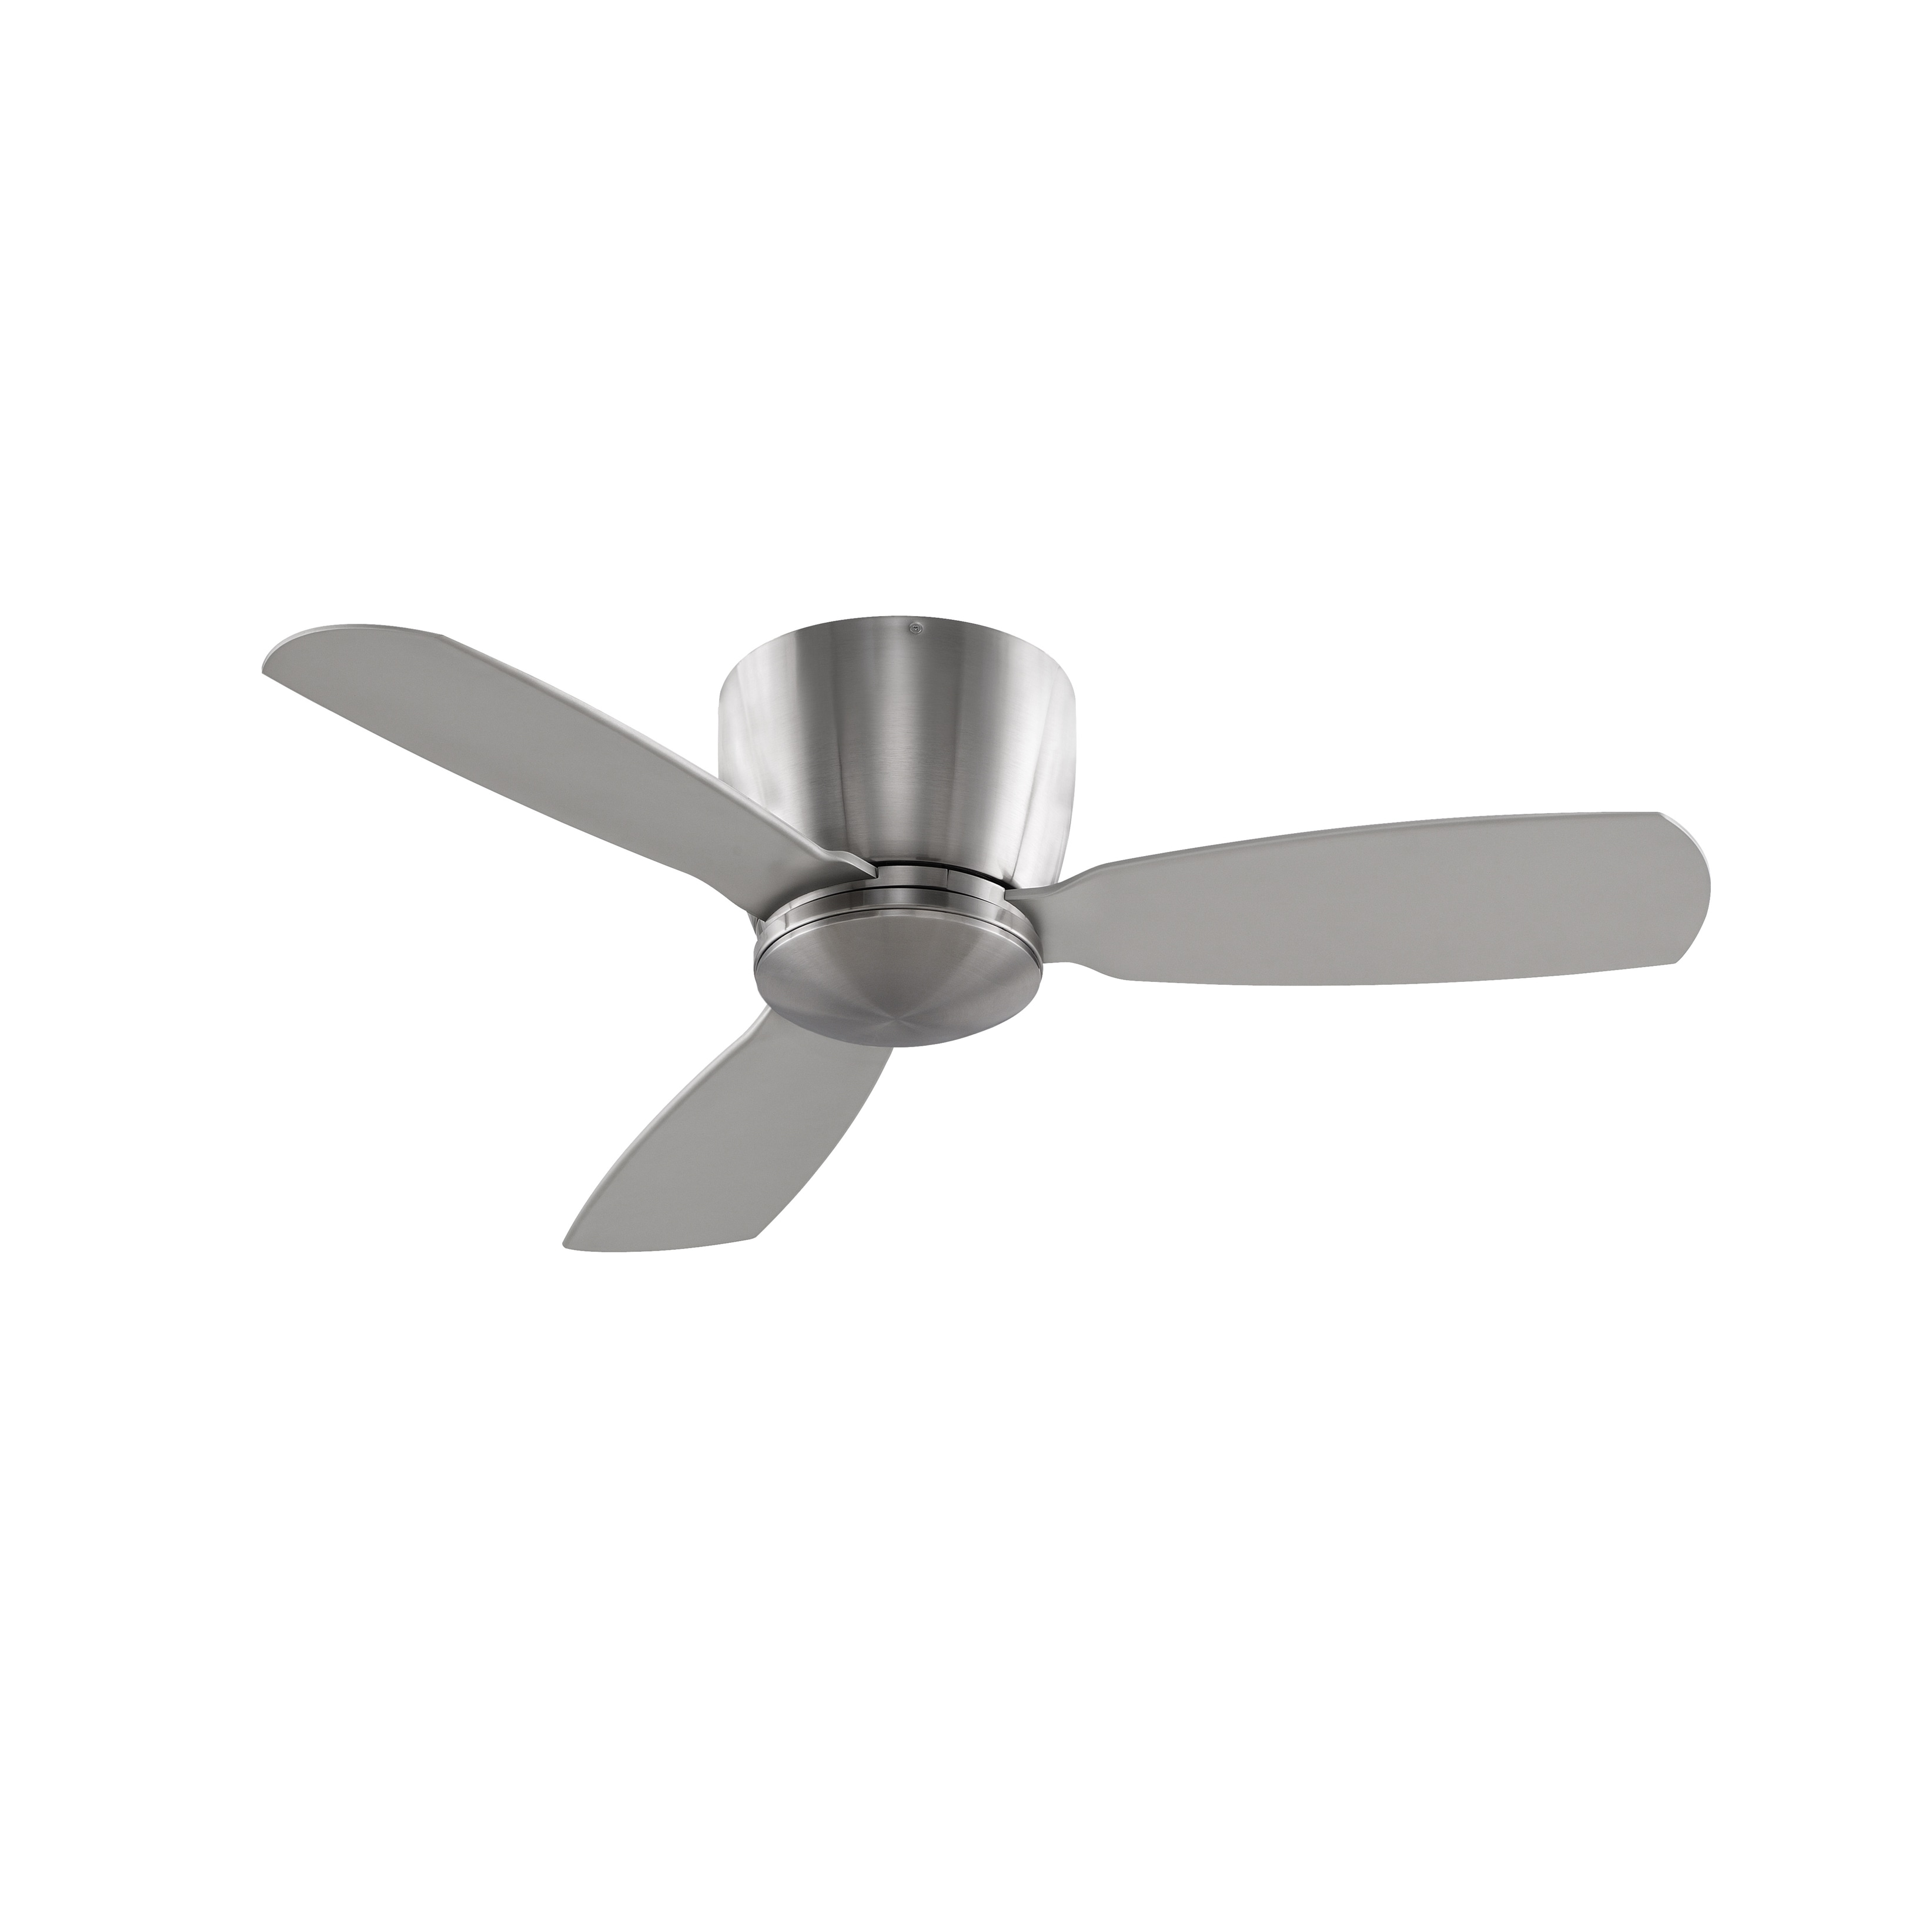 44 inch ceiling fan with light aire roto shop fanimation embrace 44inch 1light ceiling fan free shipping today overstockcom 9634445